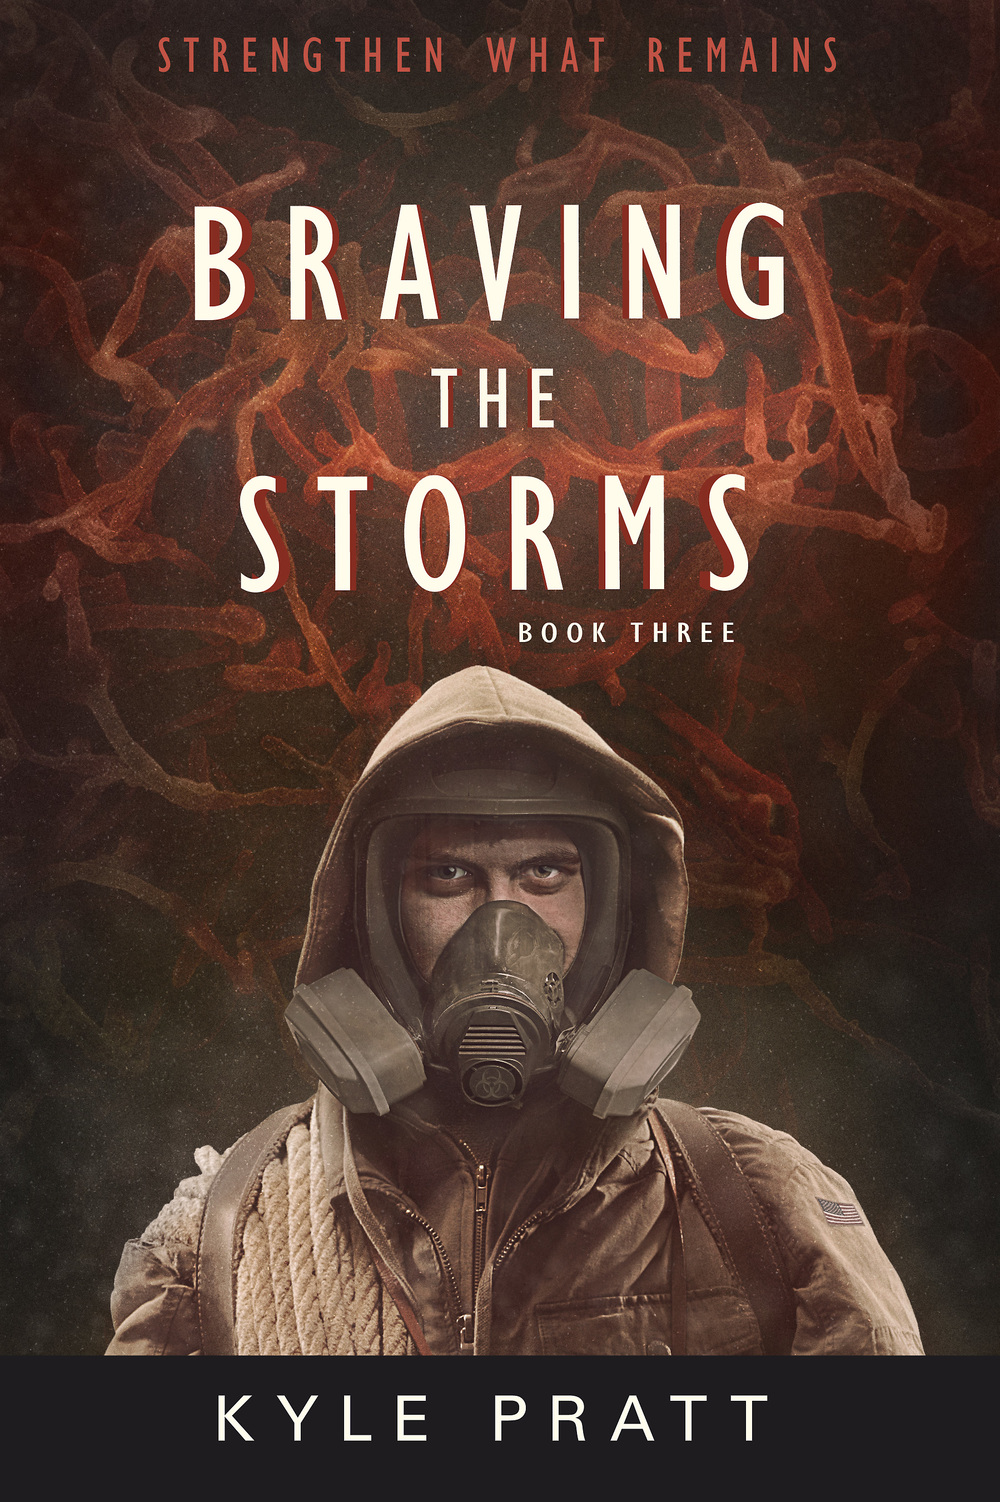 Front cover of Braving the Storms, by Kyle Pratt